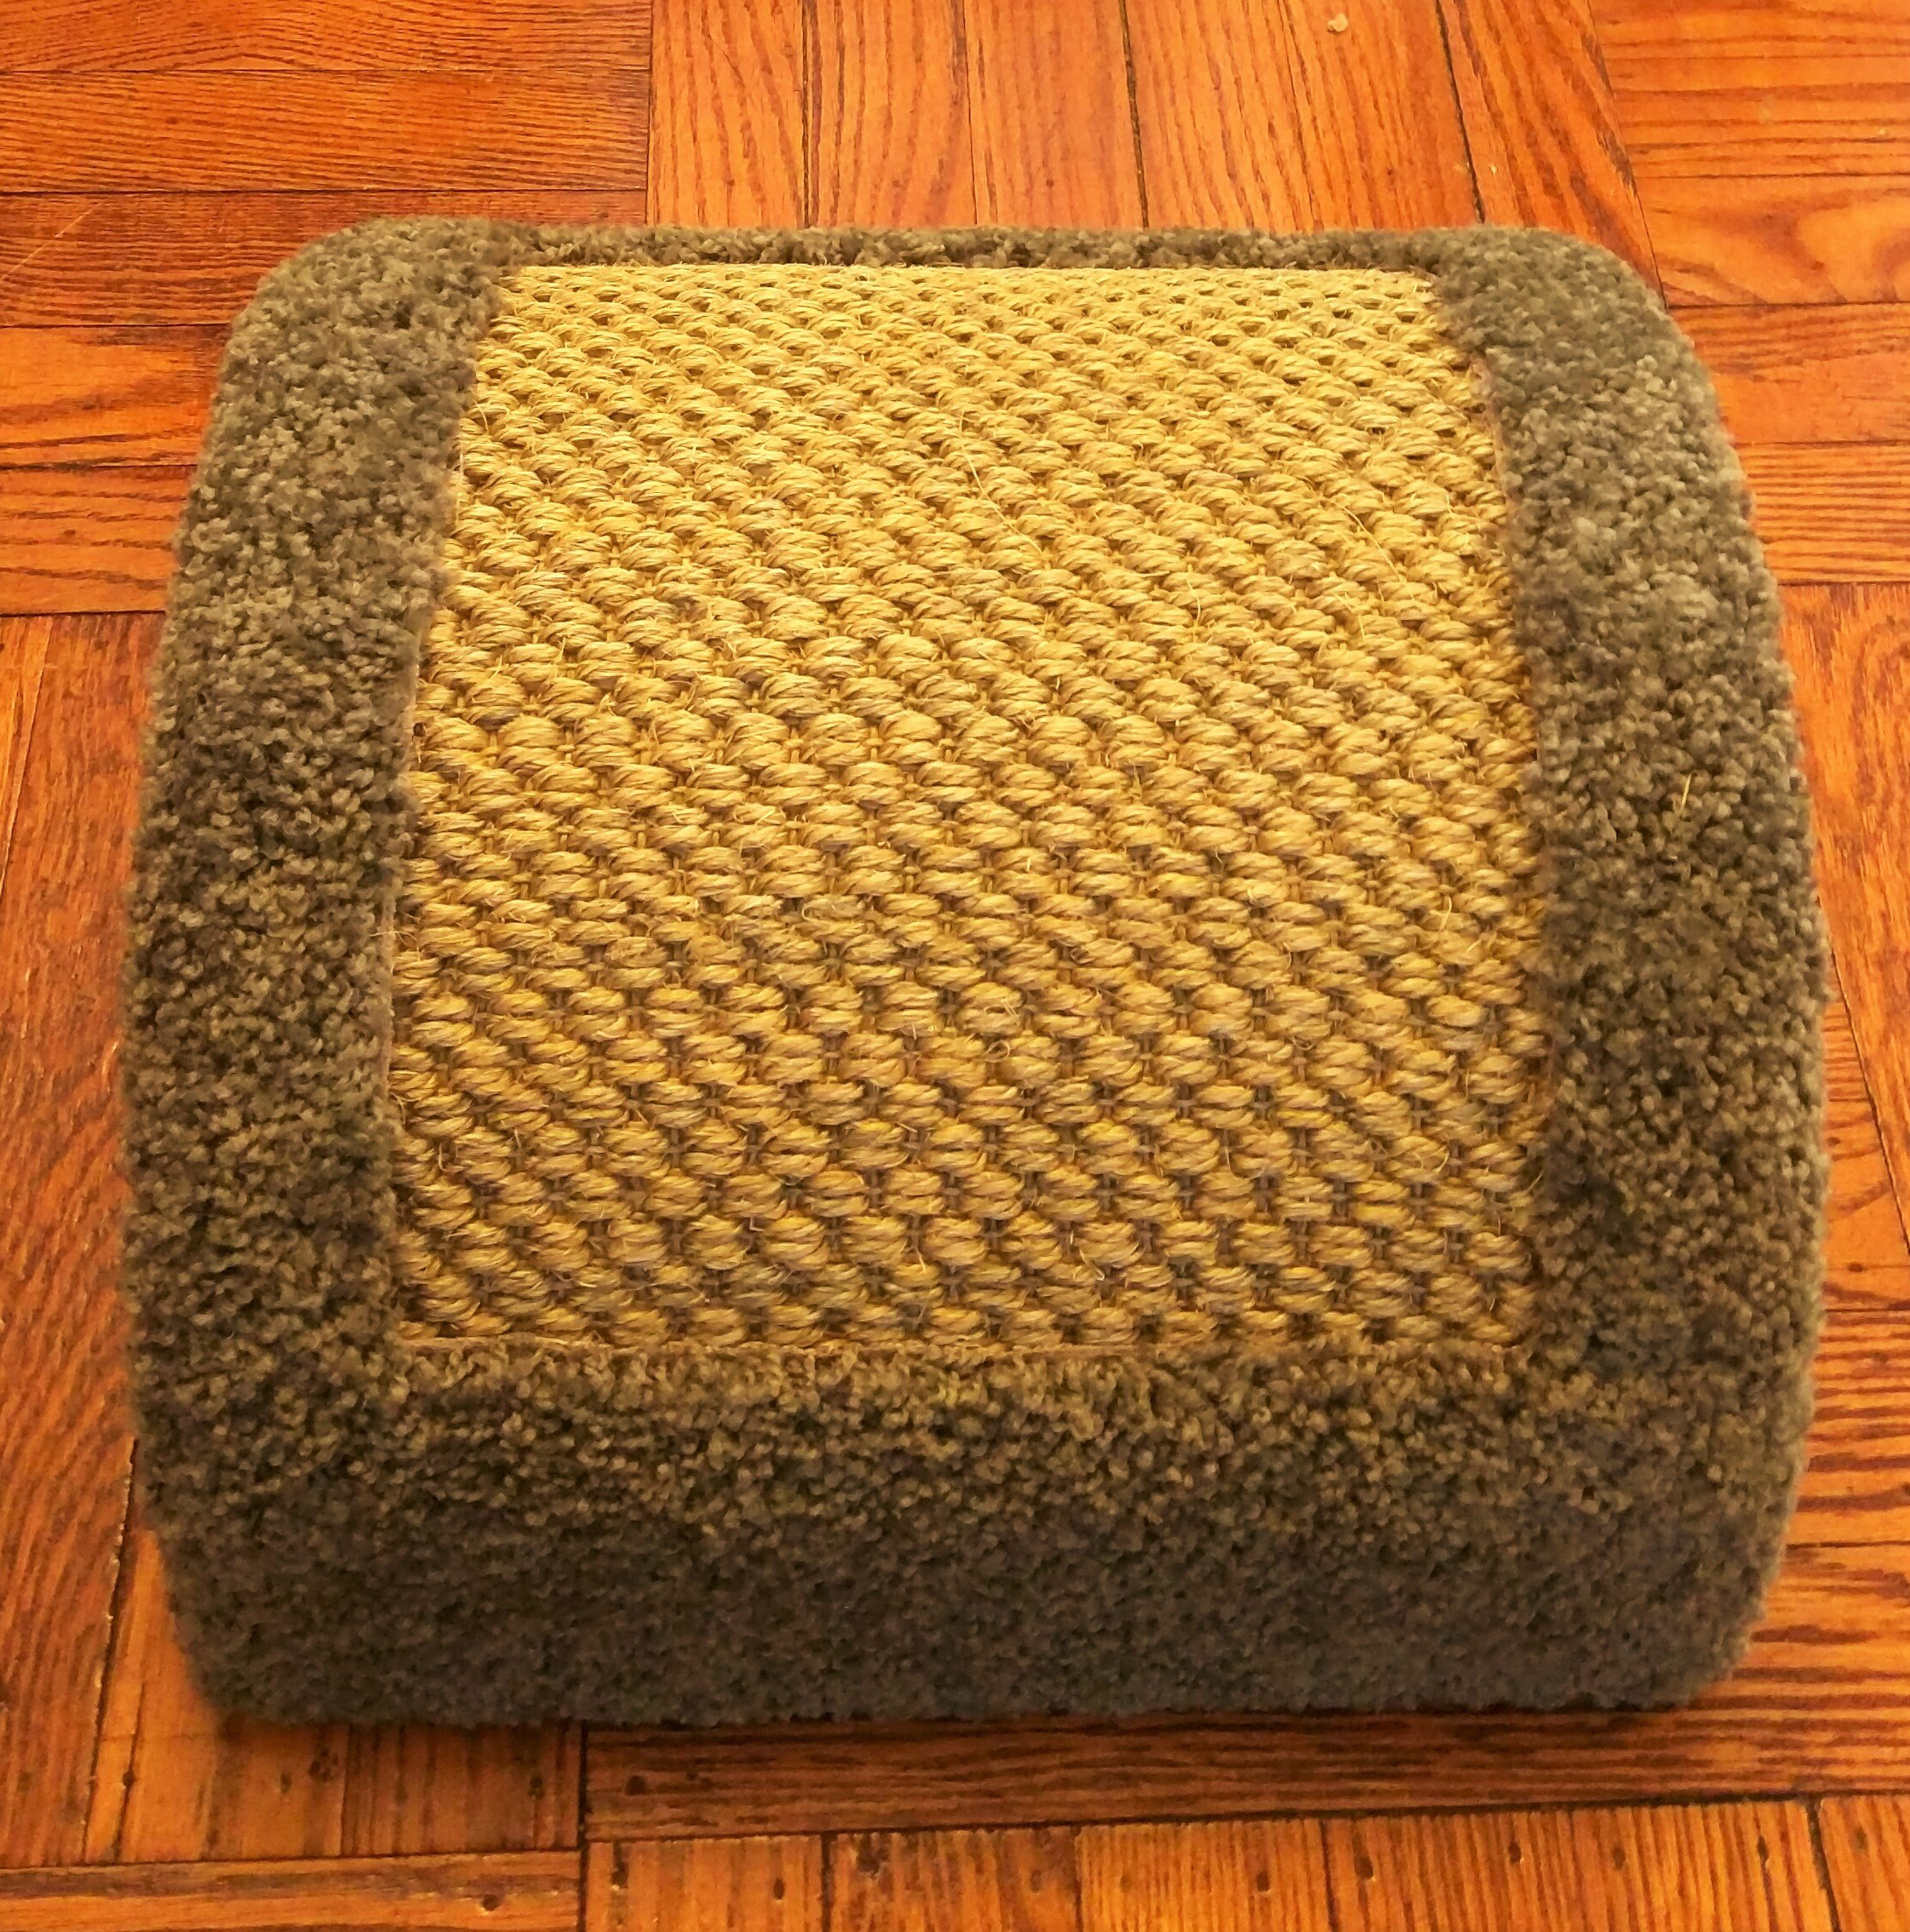 Royal Cat Boutique Dome Pad-1 Luxury Cat Bed by Royal Cat Boutique (Image #3)